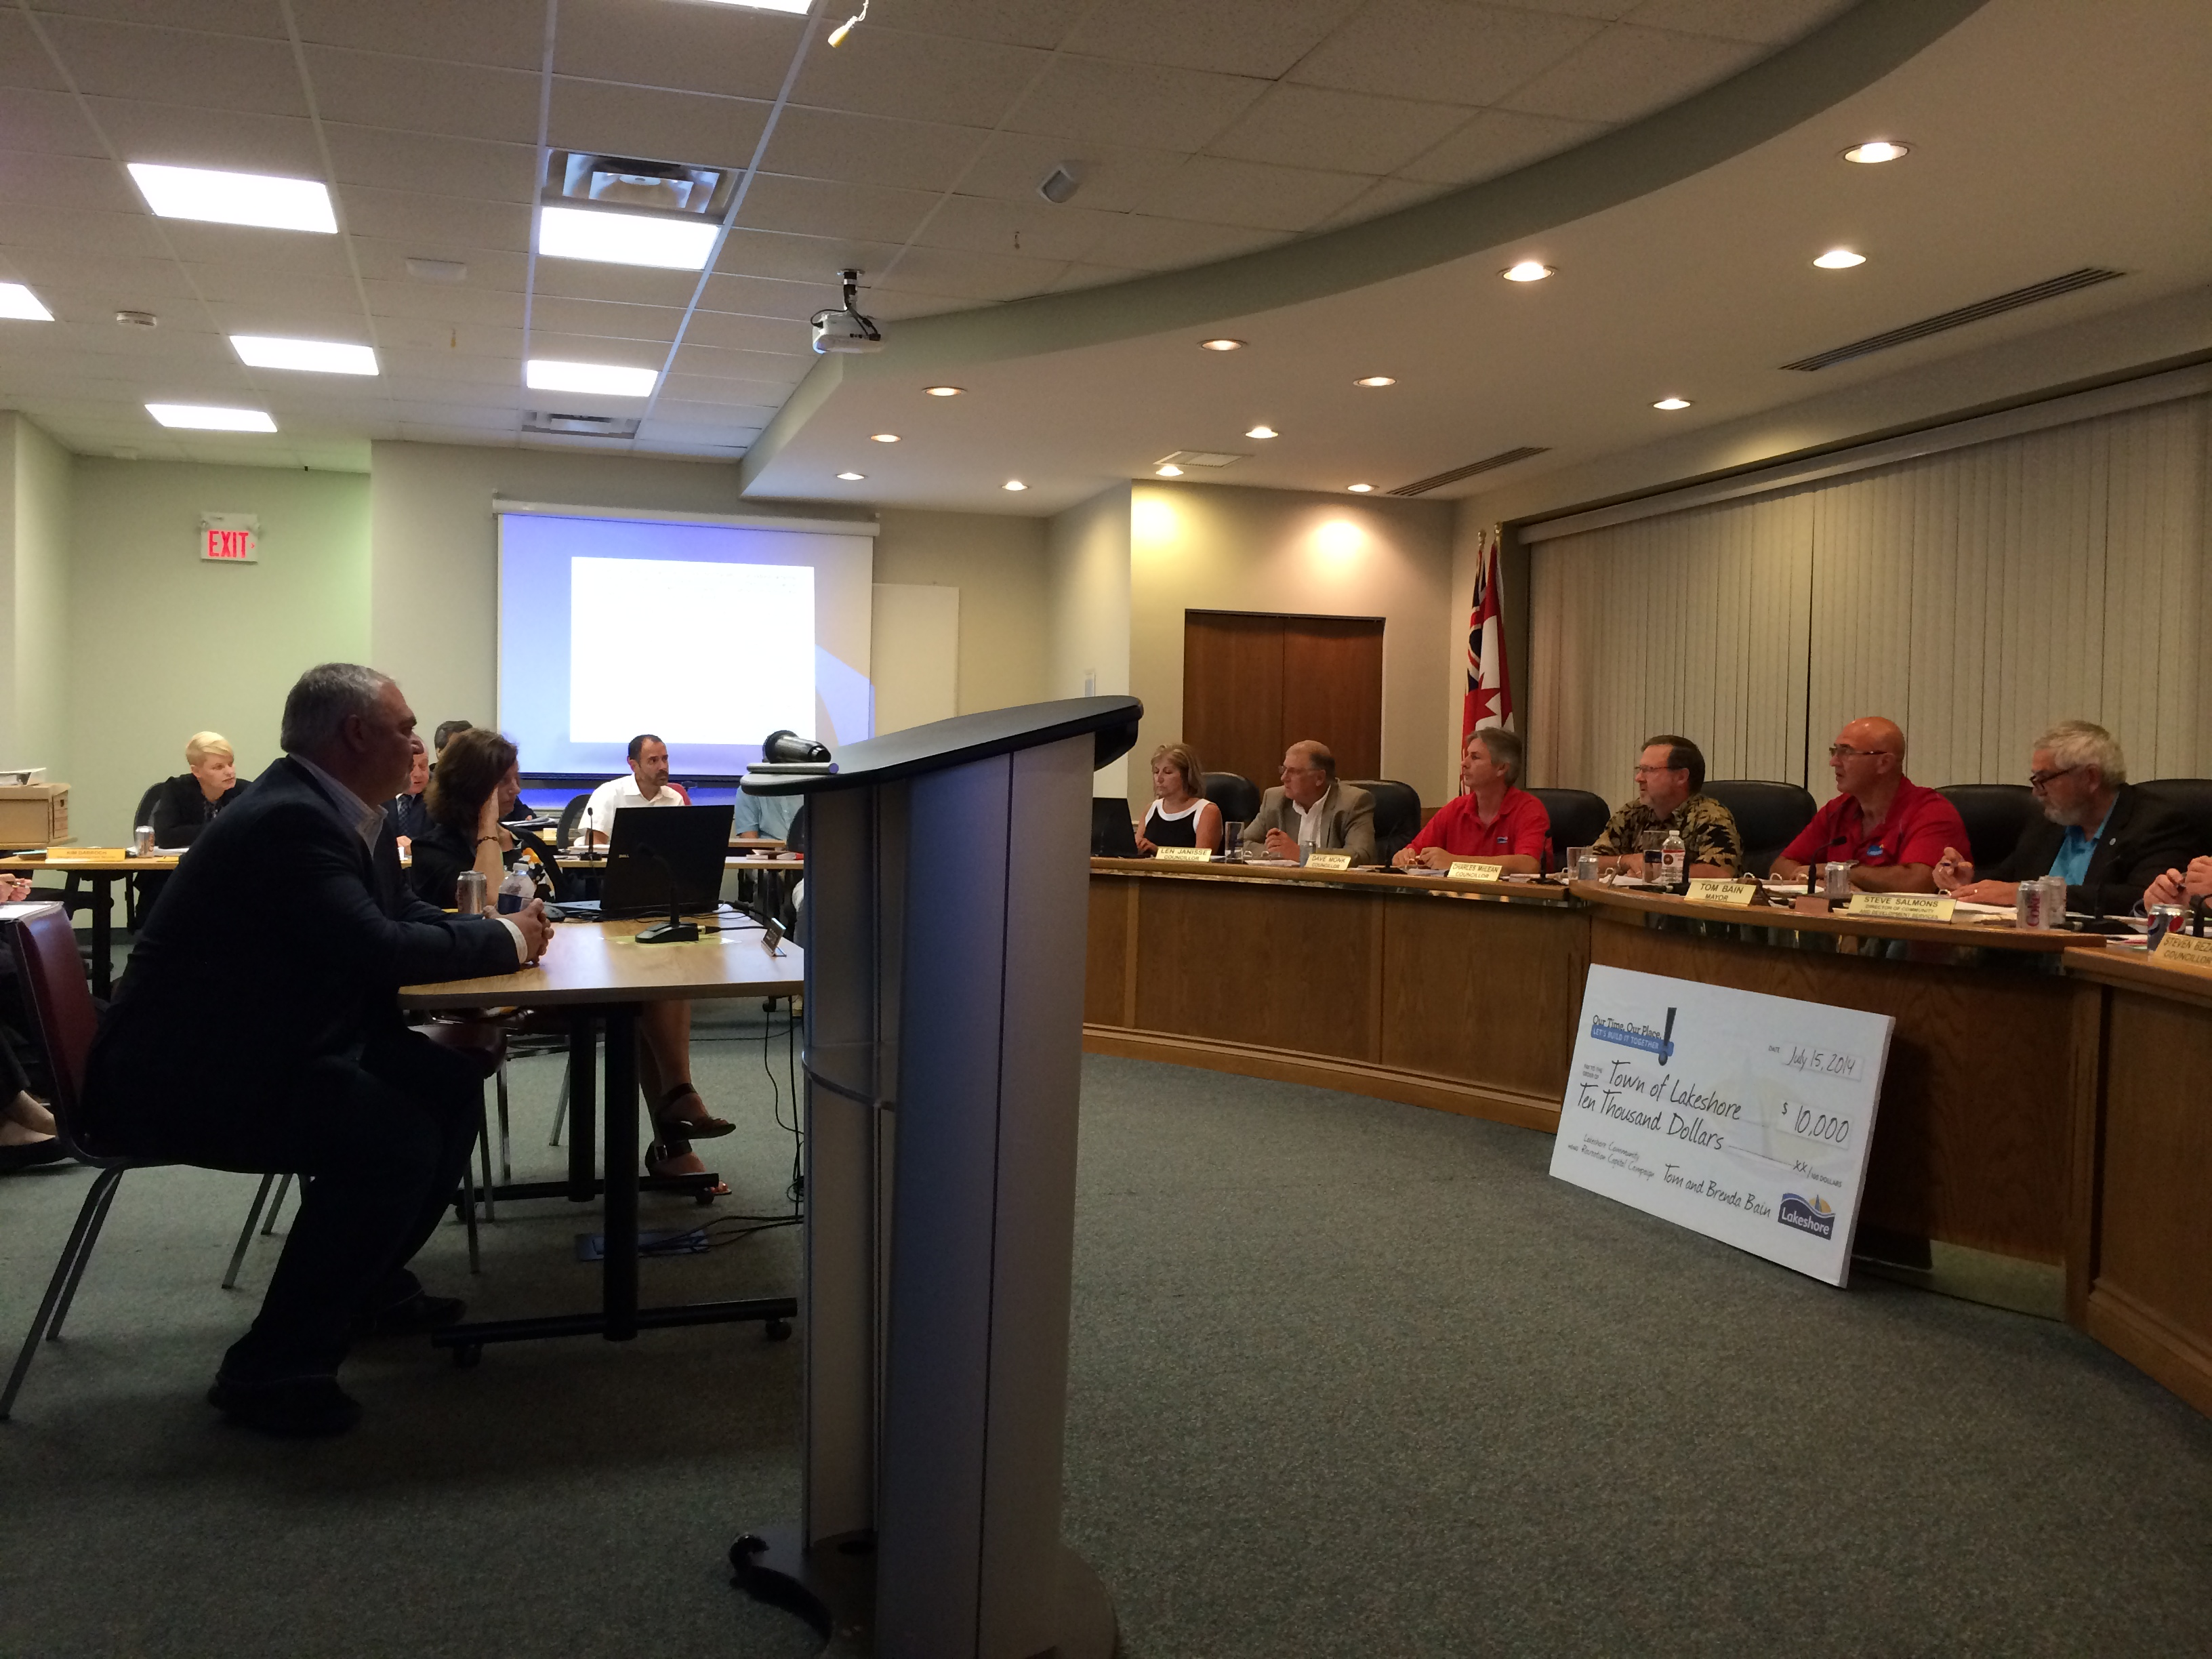 CEN Biotech President and CEO Bill Chaaban addresses Lakeshore council at its July 15, 2014 meeting as it debates a proposed bylaw regulating hemp and medical marijuana production. (Photo by Ricardo Veneza)